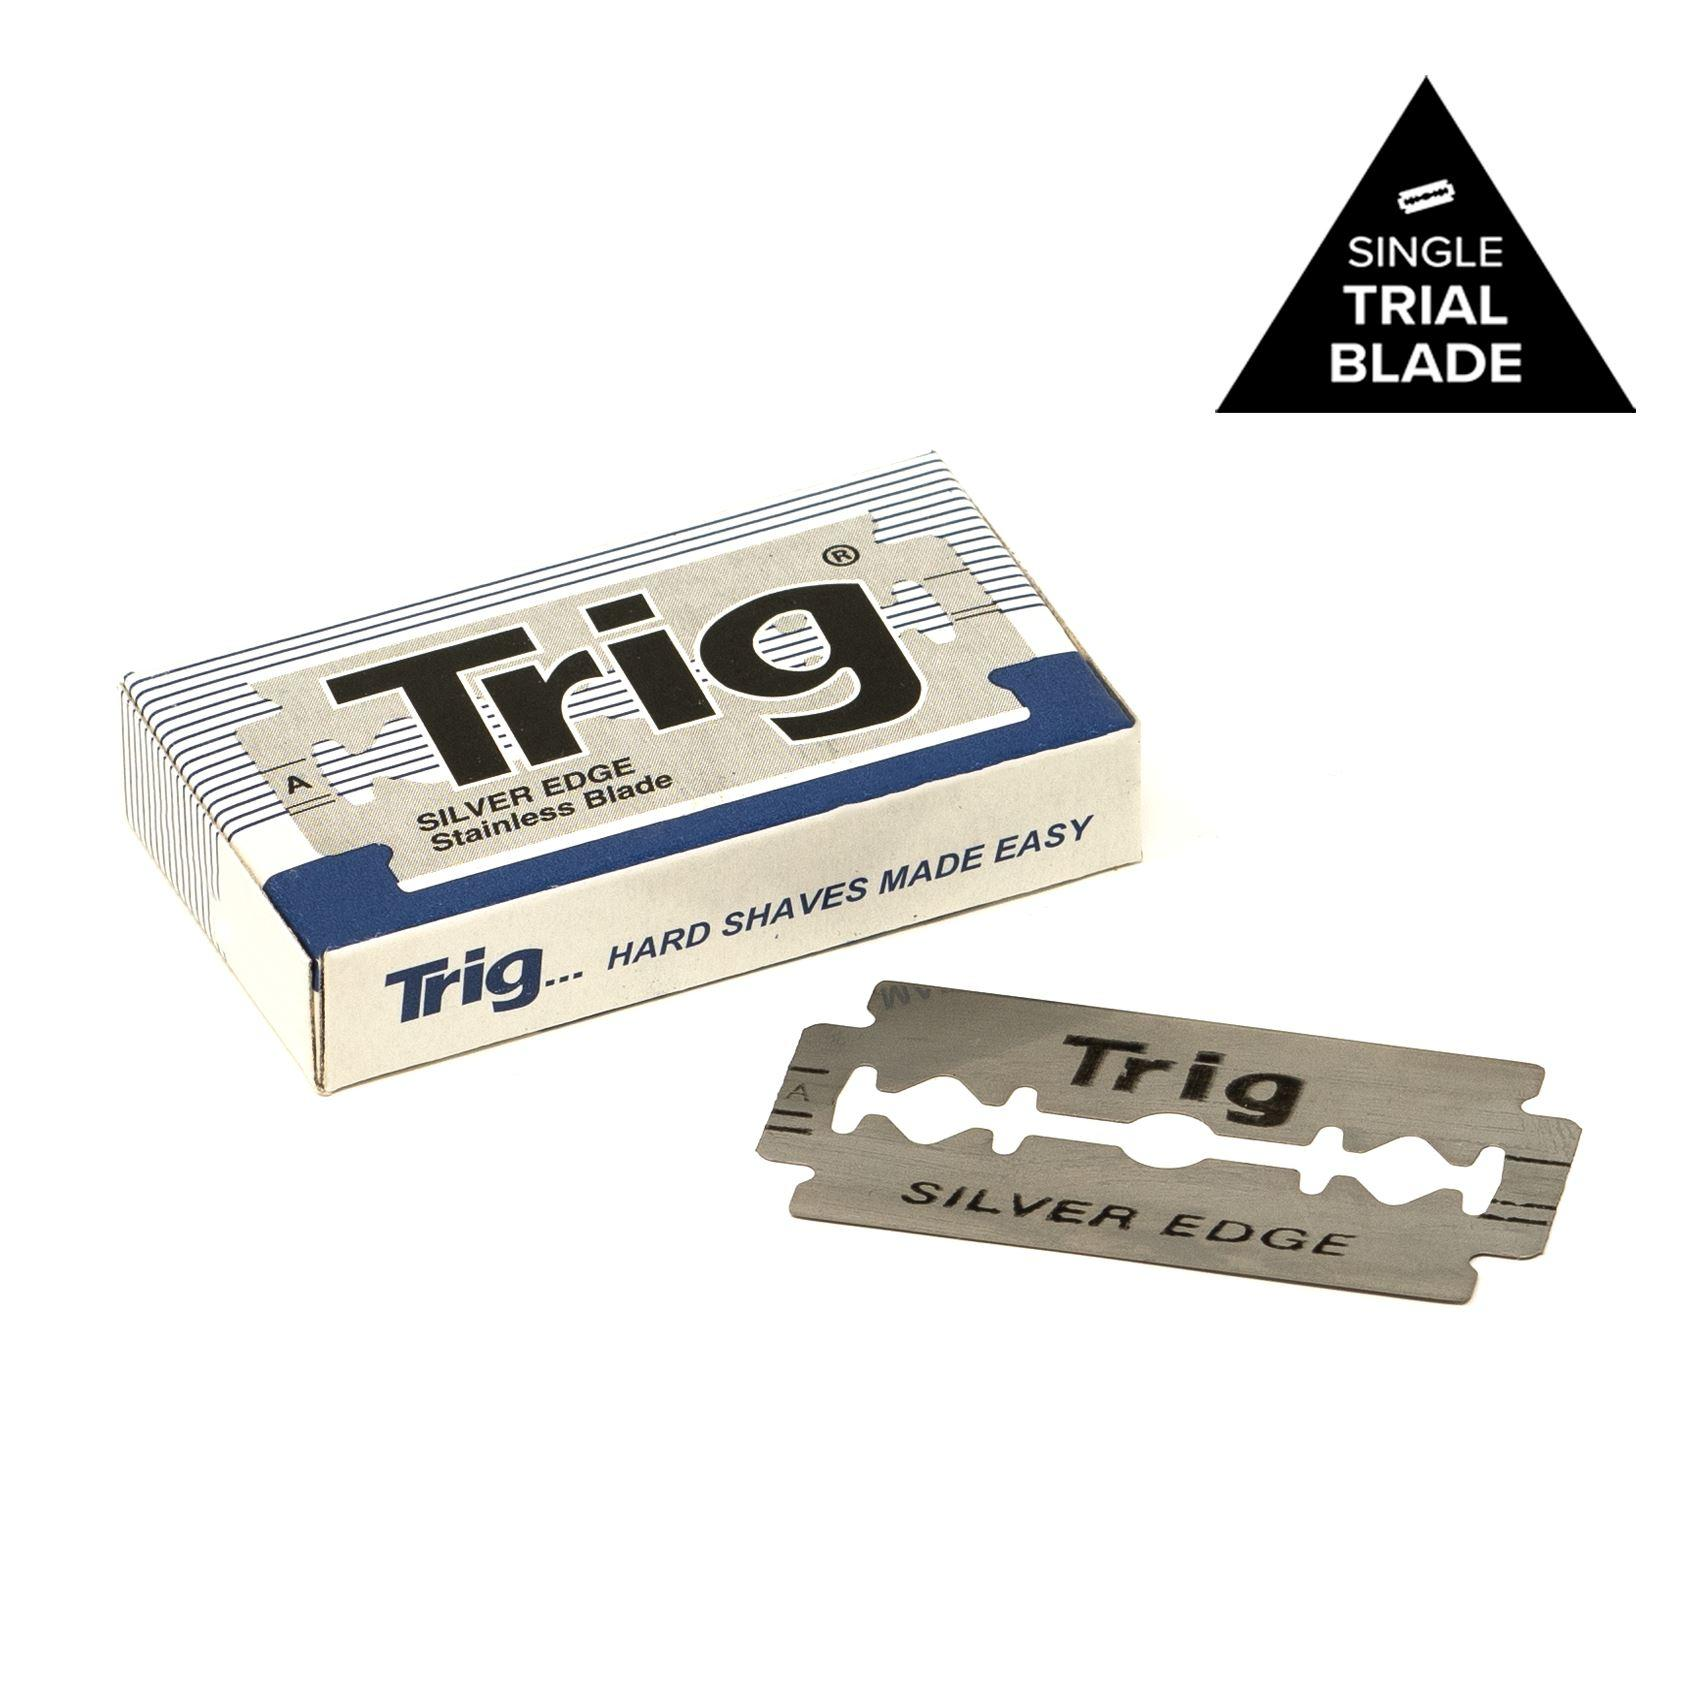 Treet Trig Silver Edge Stainless Double Edge Sample Razor Blade